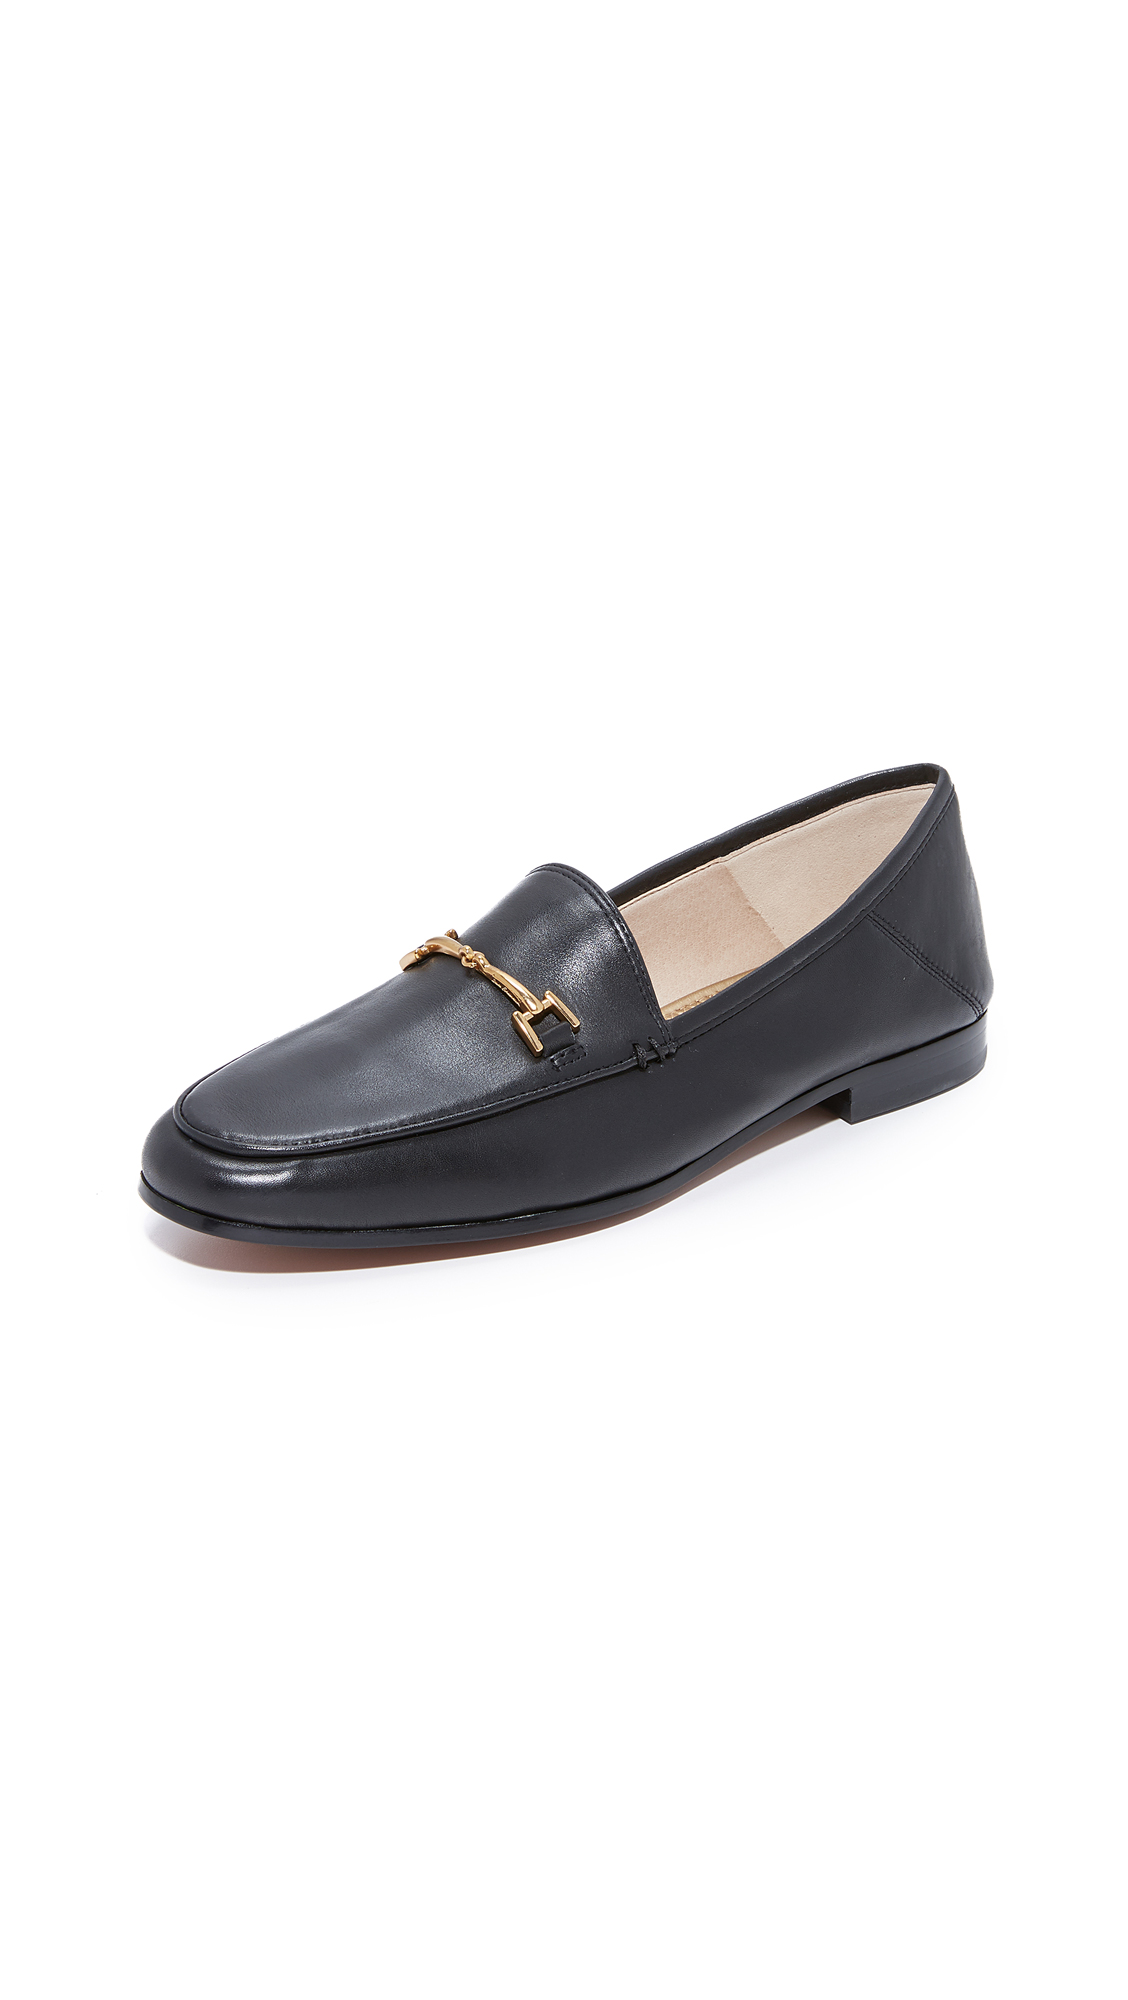 Sam Edelman Loraine Loafers - Black